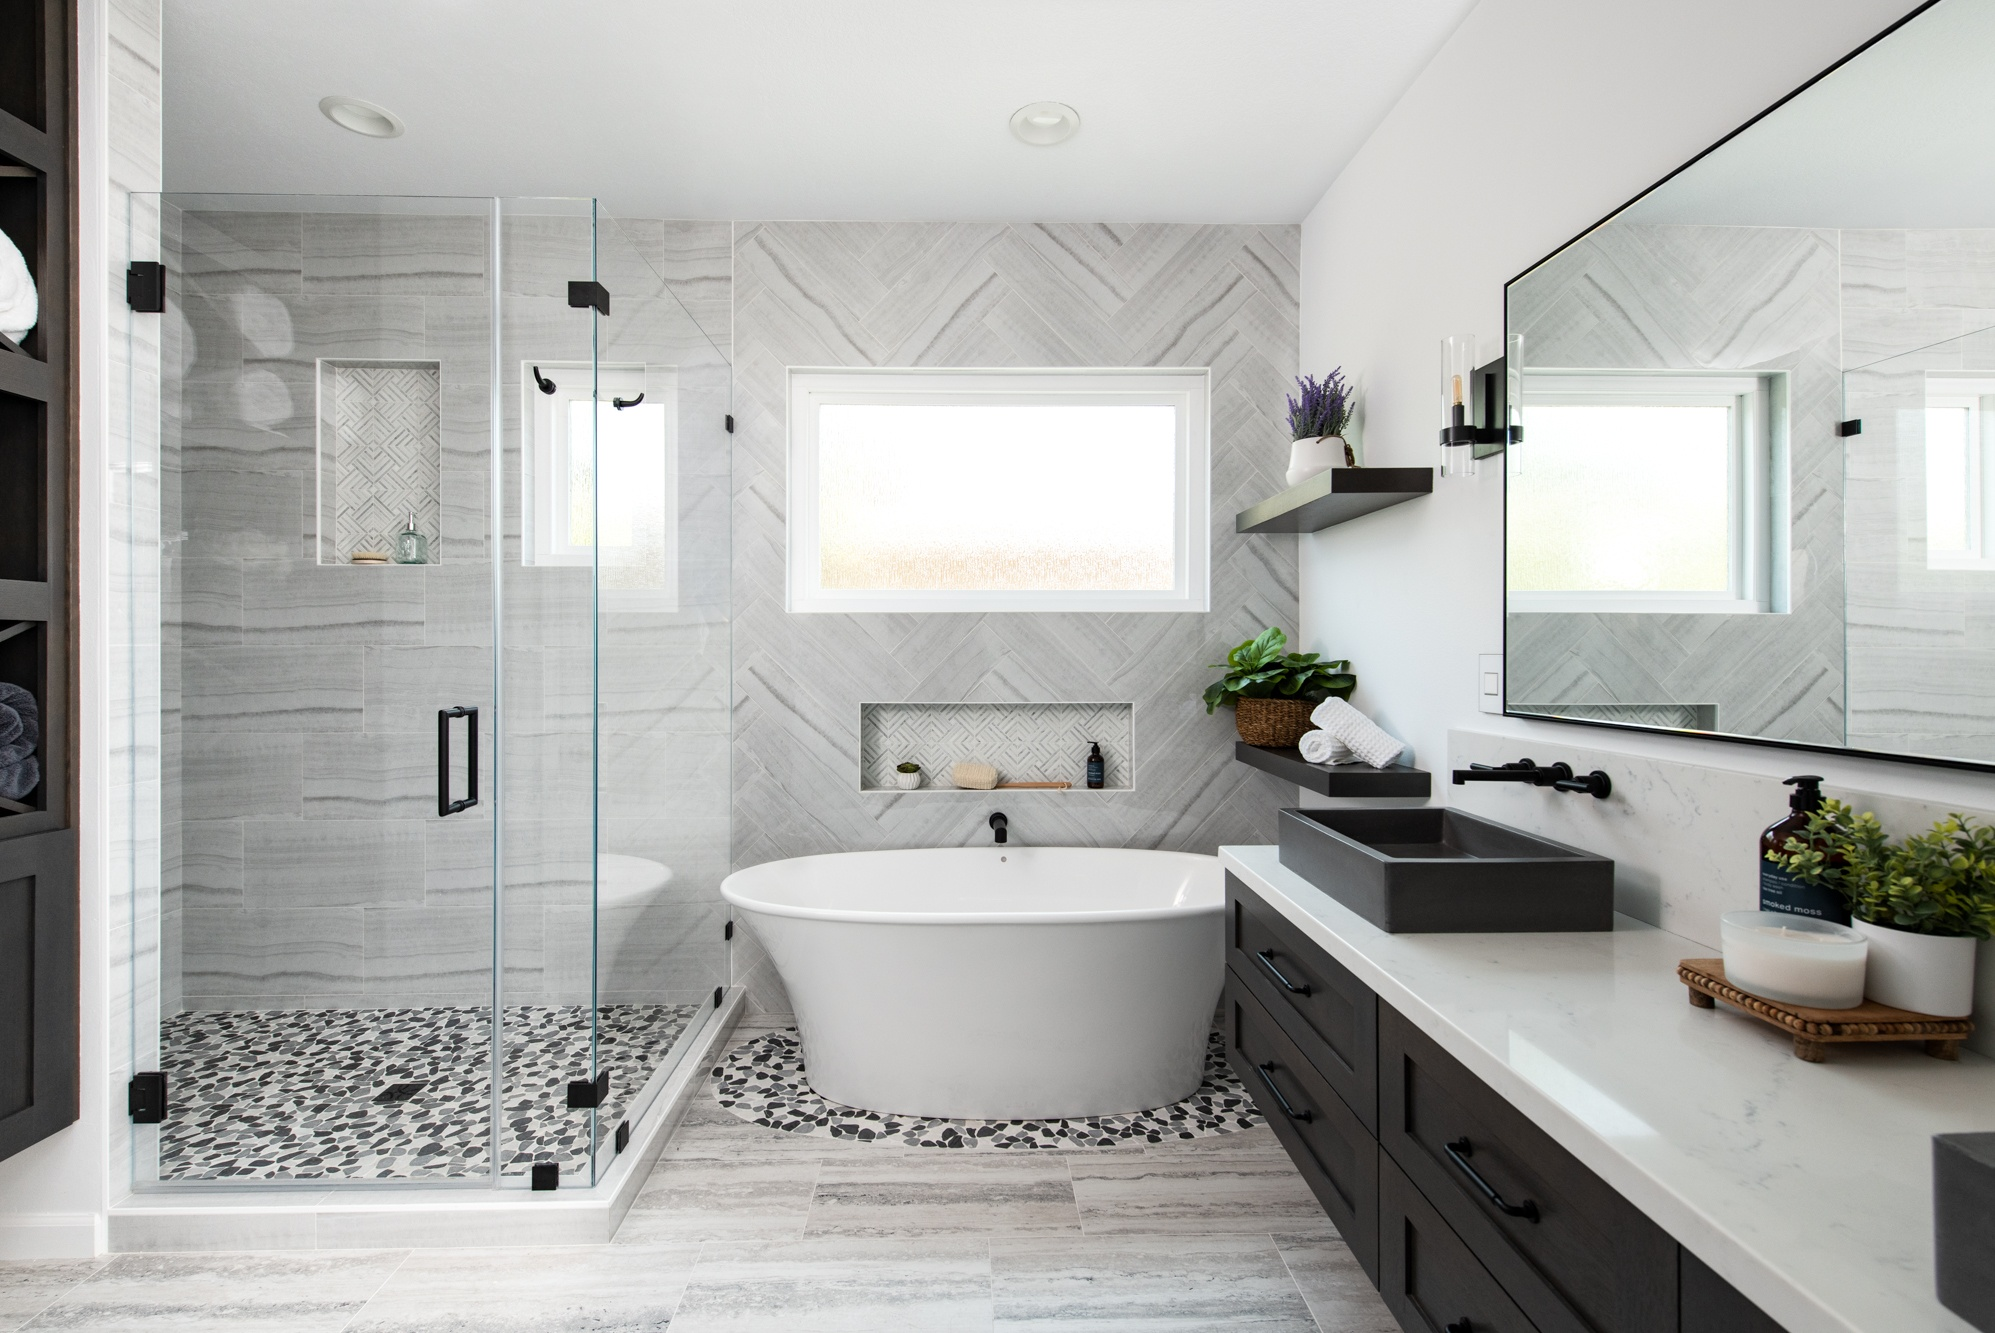 To Hire A Bathroom Remodeling Contractor, Bathroom Remodeling Contractor